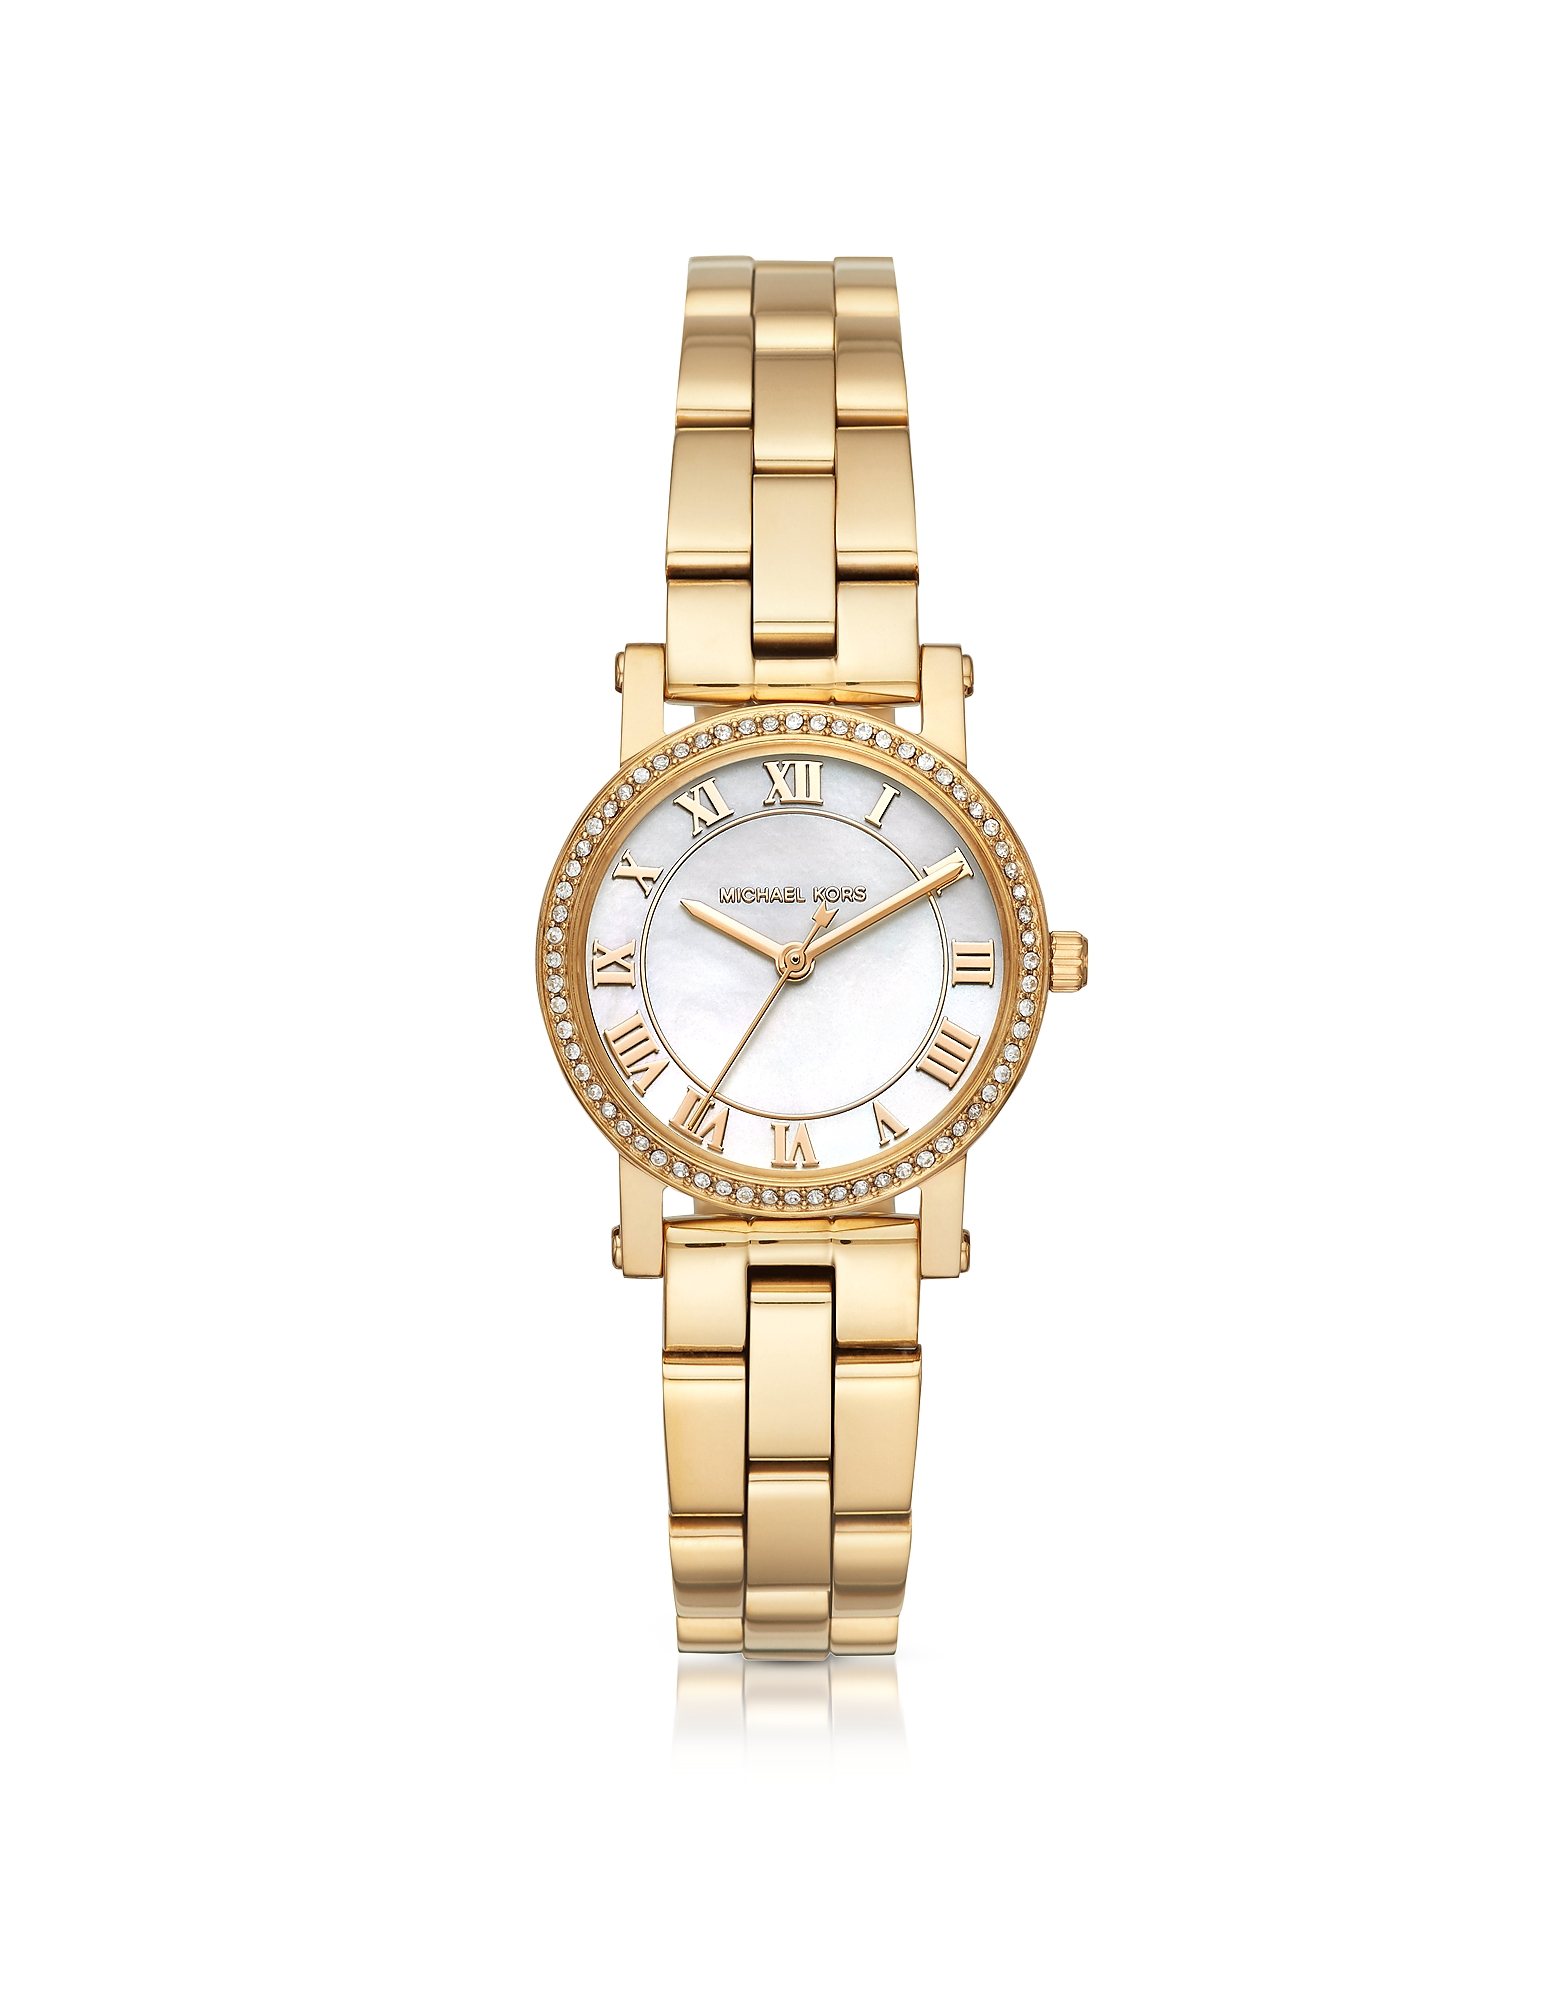 Michael Kors Designer Women's Watches, Petite Norie Gold-tone Stainless Steel Women's Watch